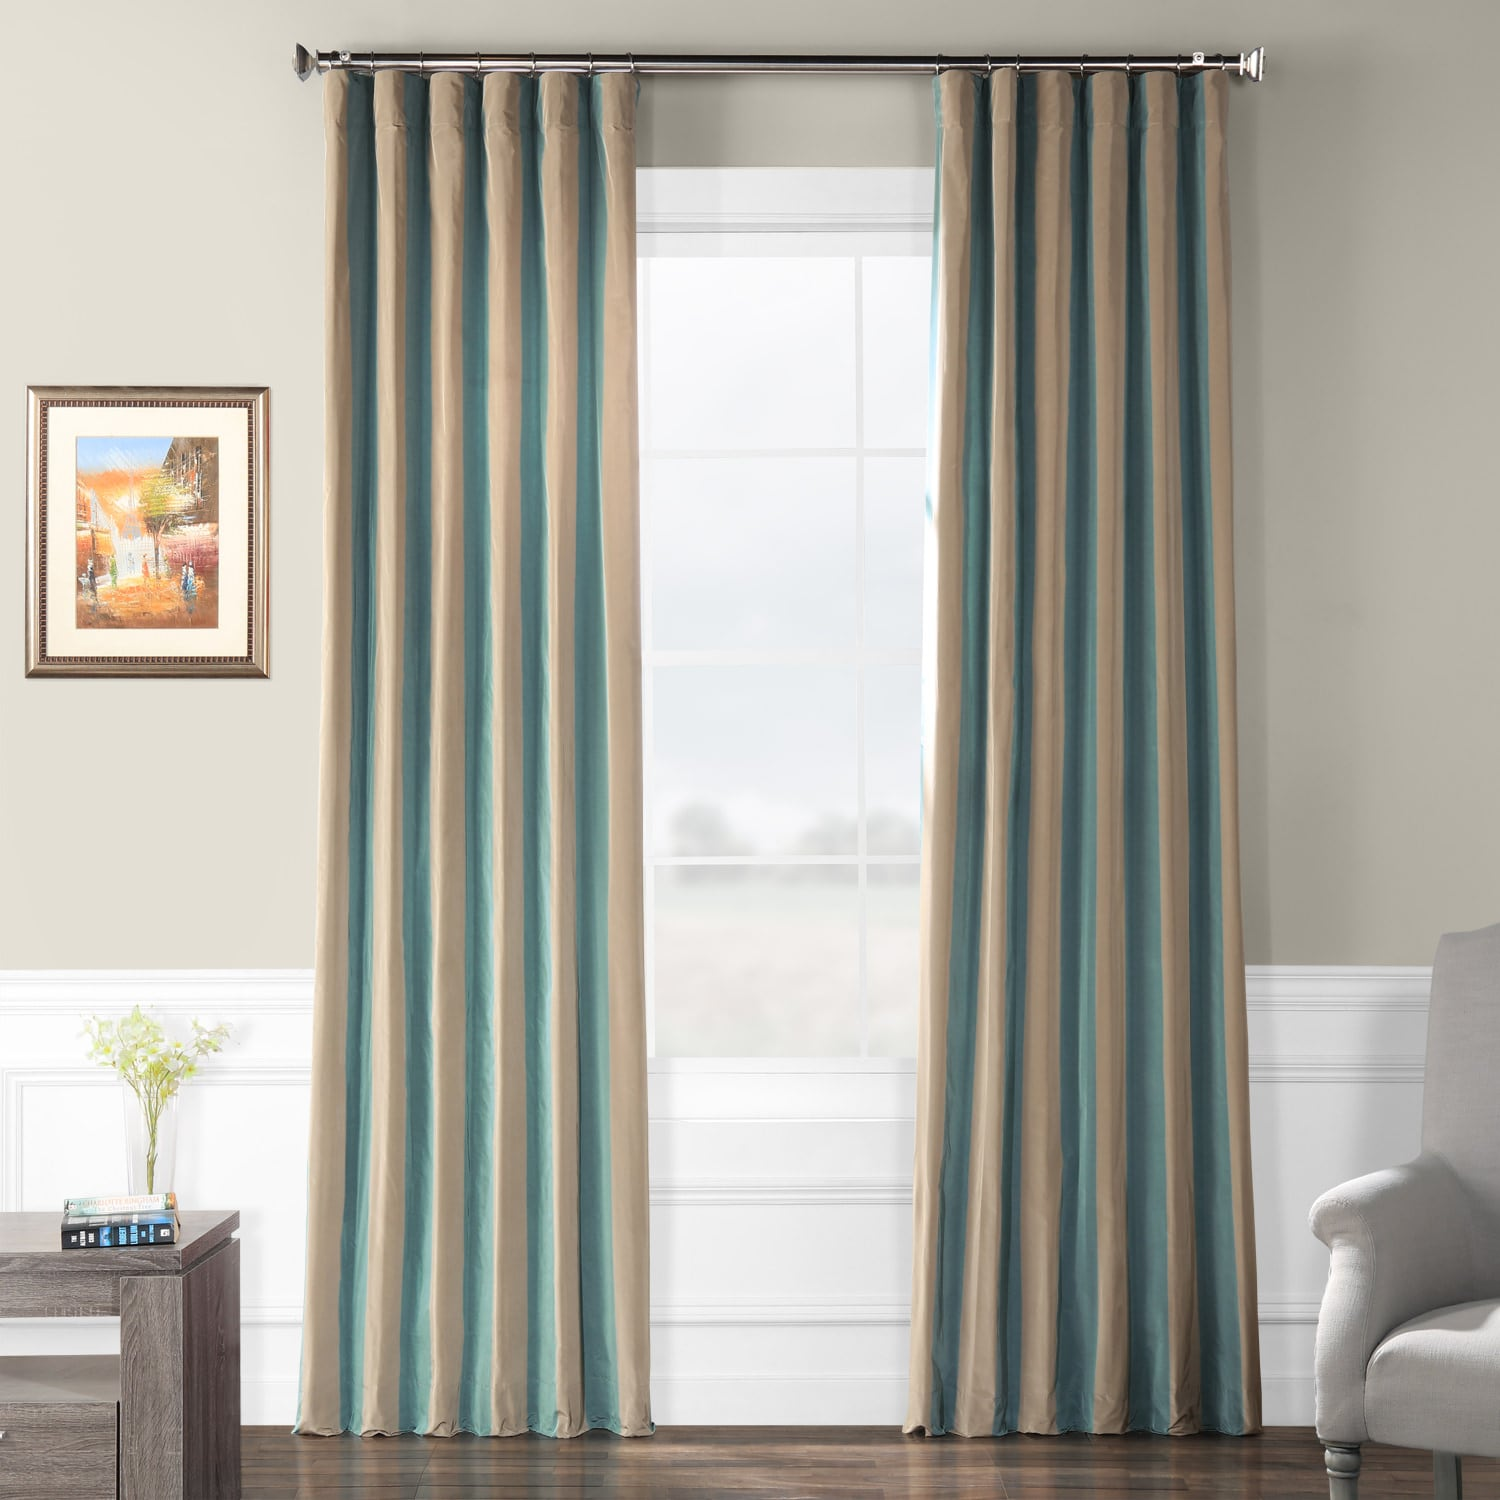 grommet concept by drapesfaux images curtains full stunning lined drapes of teal size and silk curtain canopy curtainsfauxfaux faux